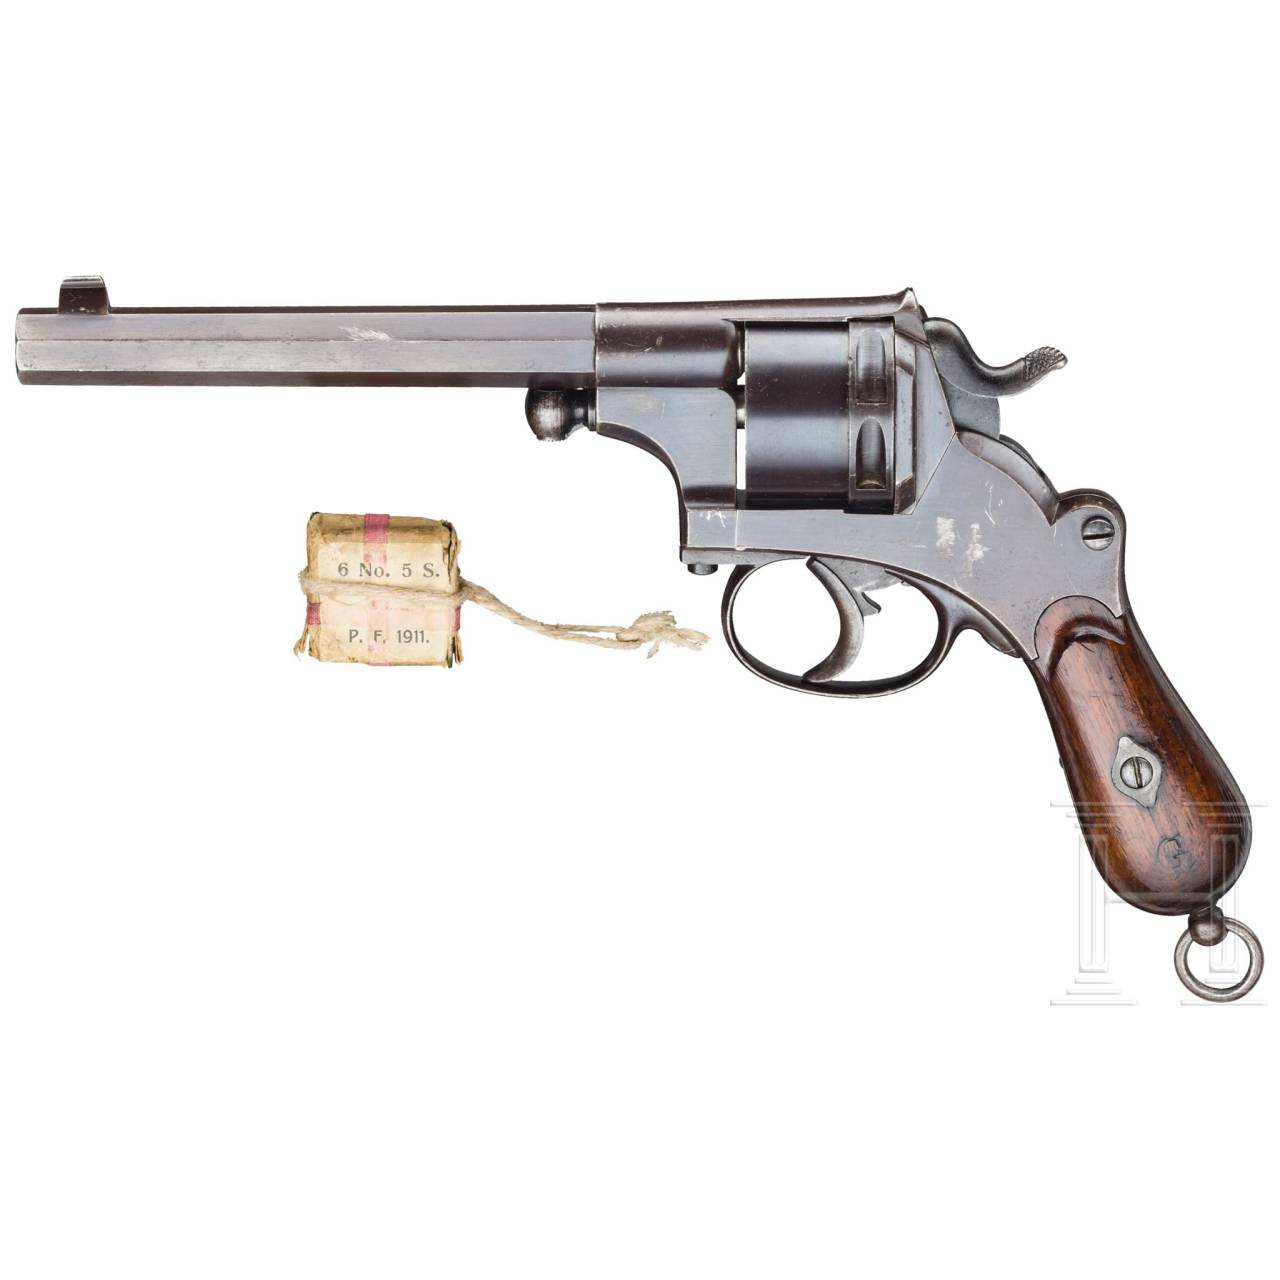 A J.F.J. Bar revolver, Delft (reduced version of Mod. 1873)